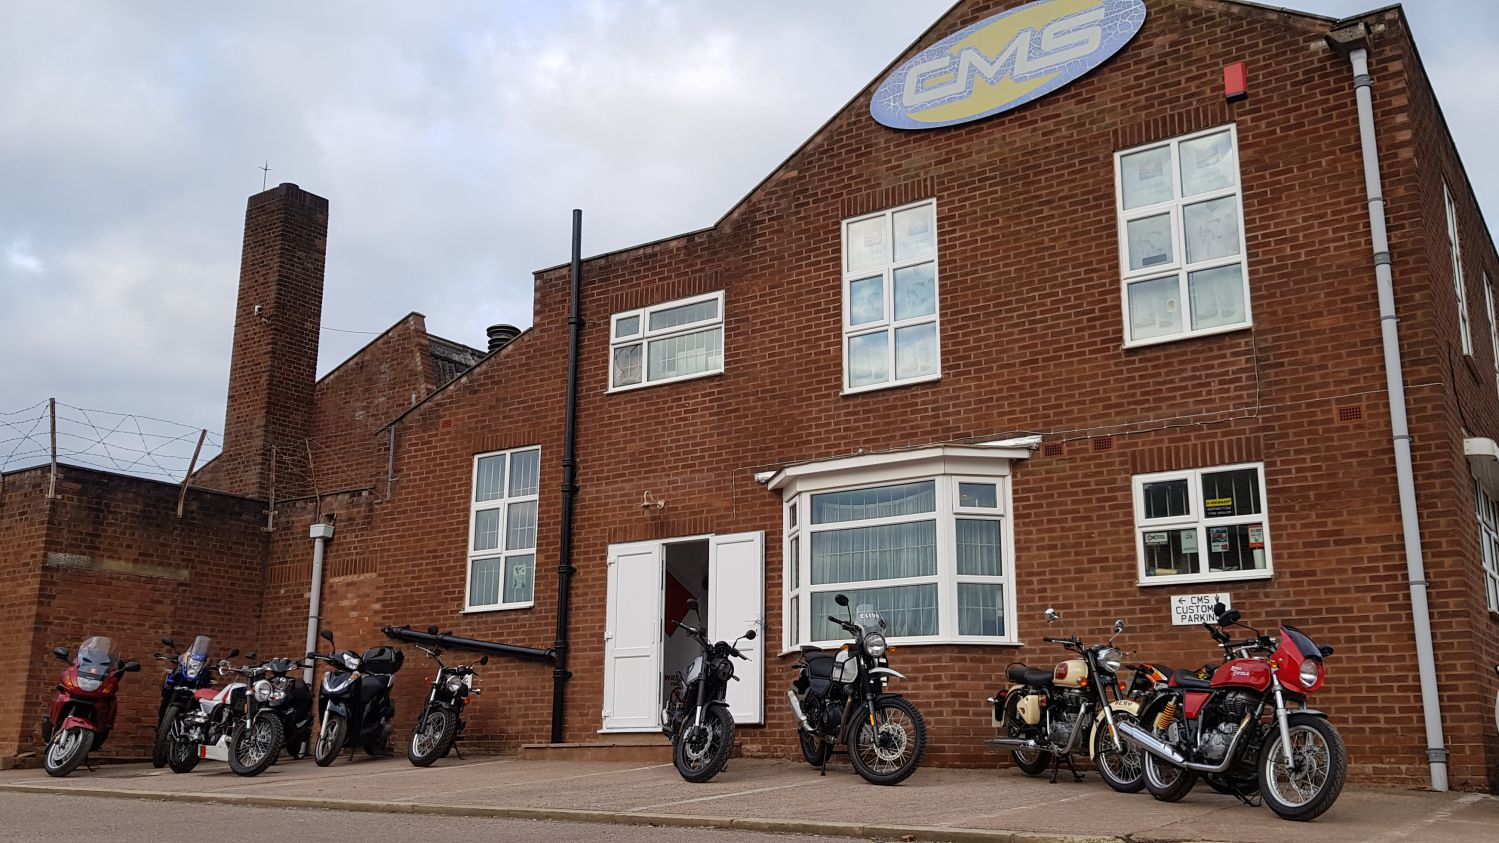 CMS Motorcycles Exeter Shop